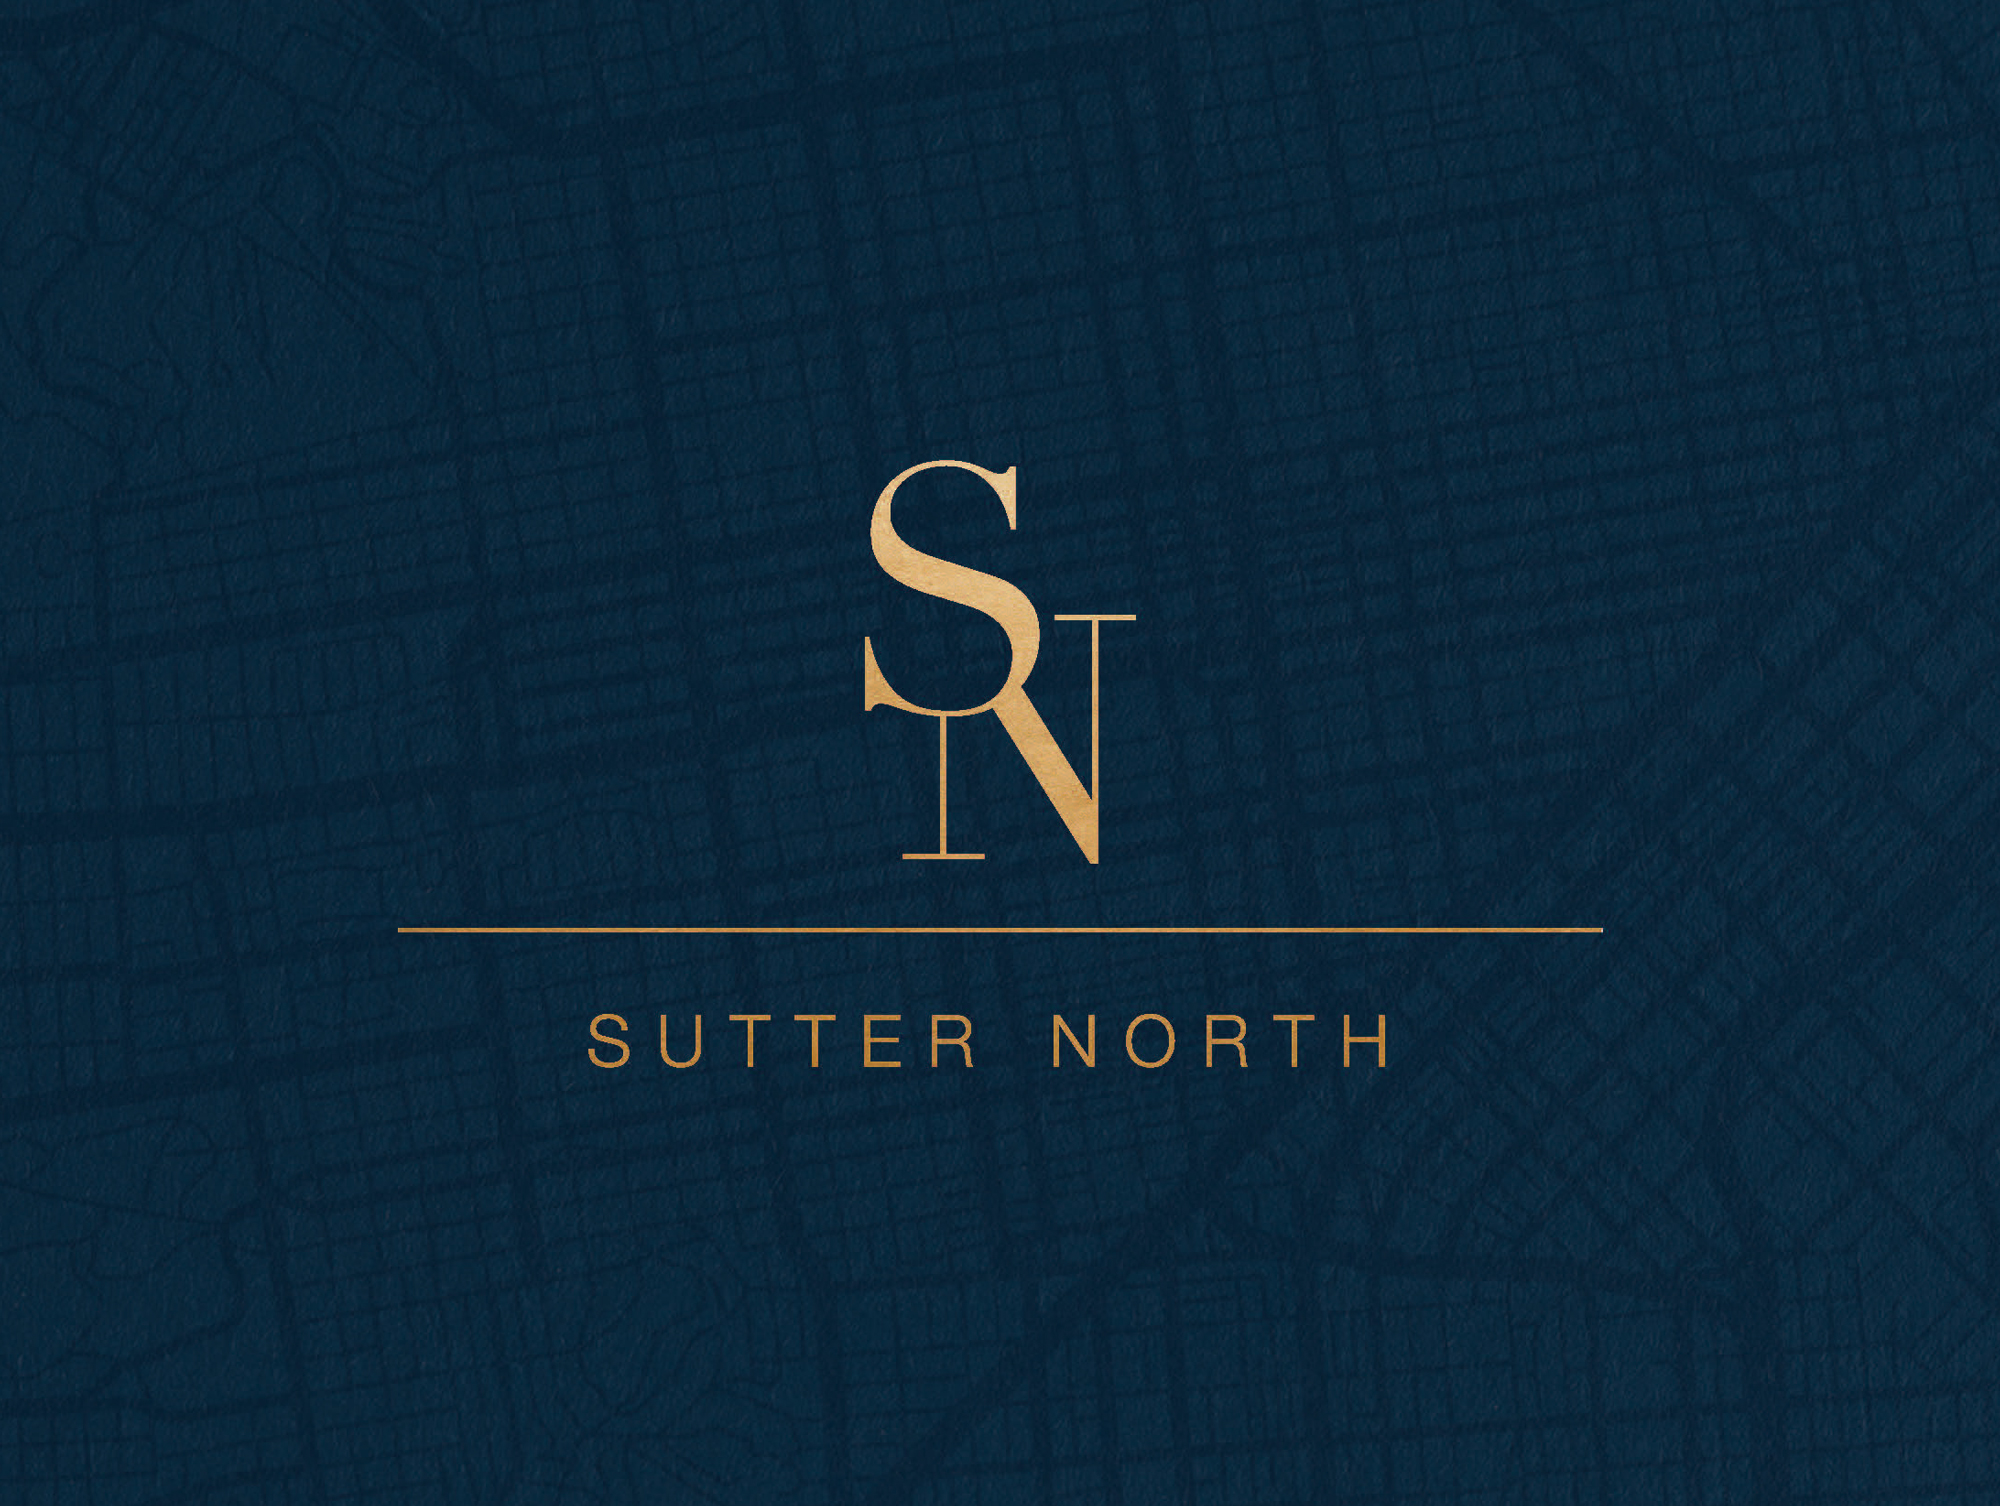 Sutter North, San Francisco